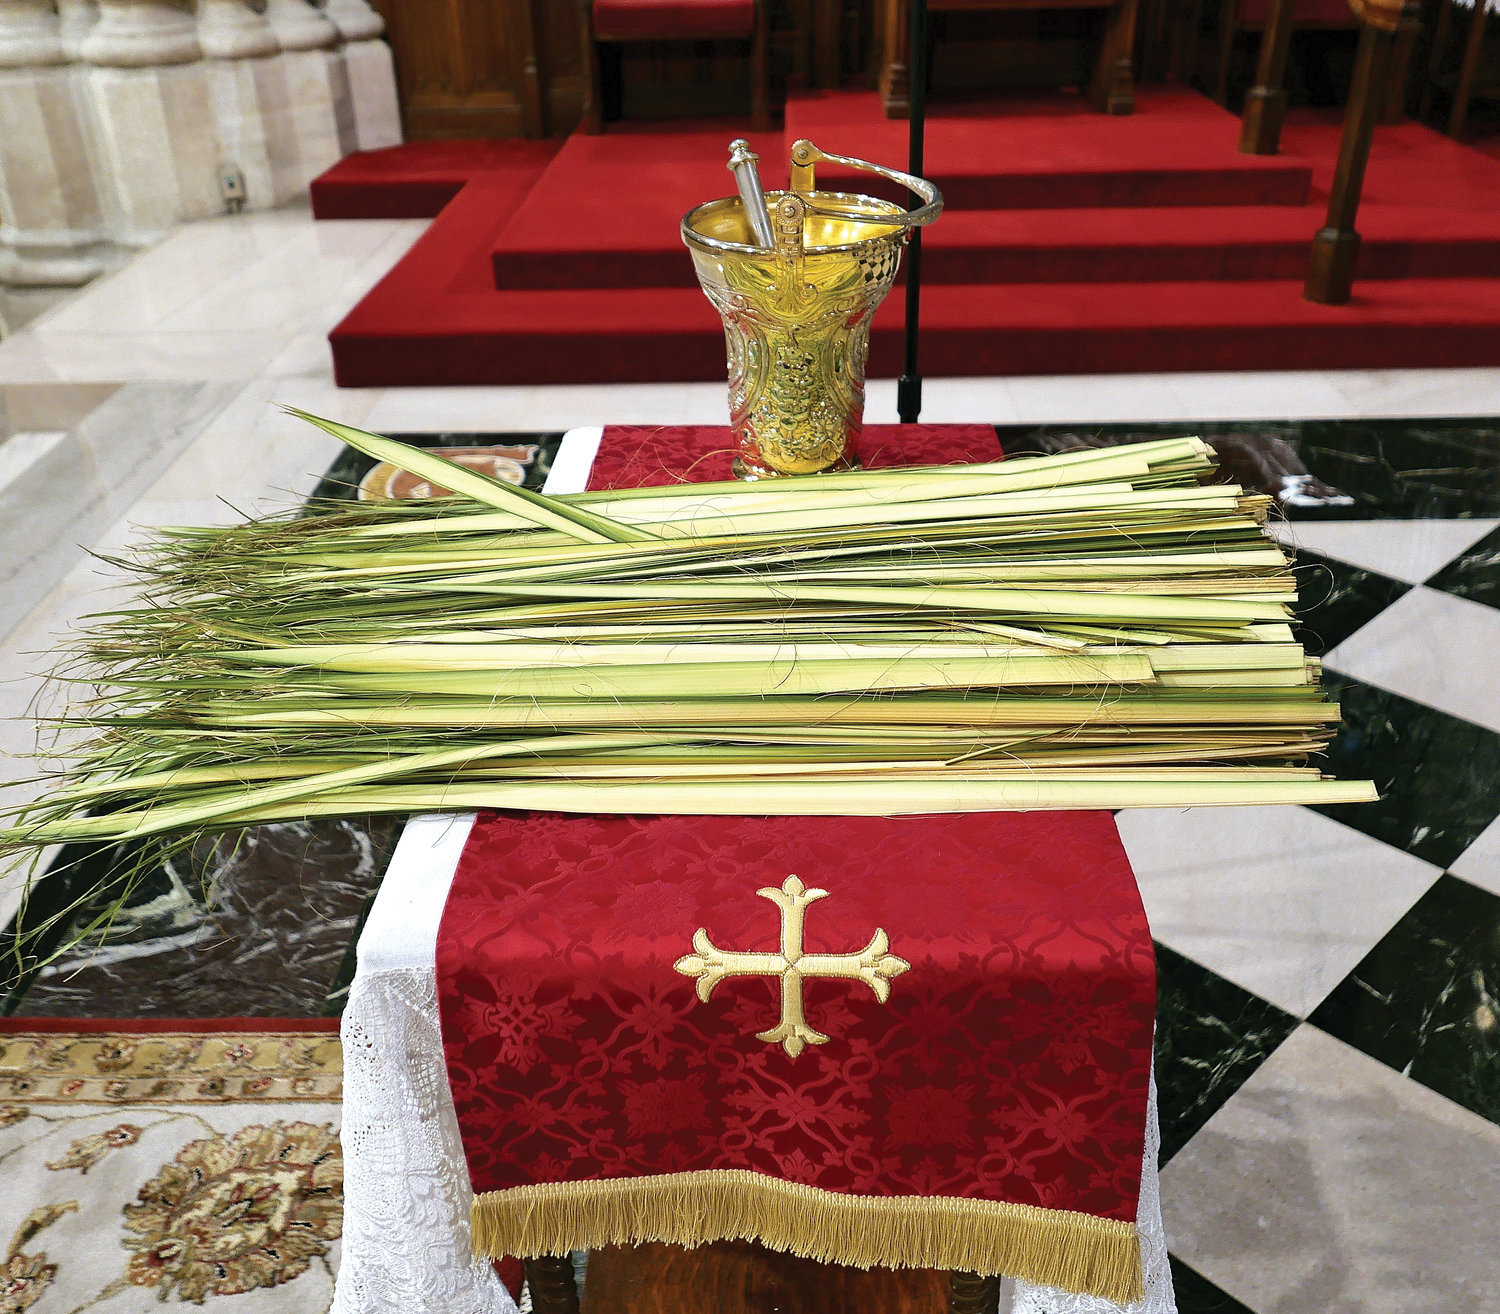 Strips of palm sit on a table where Cardinal Dolan blessed them at the start of Mass.